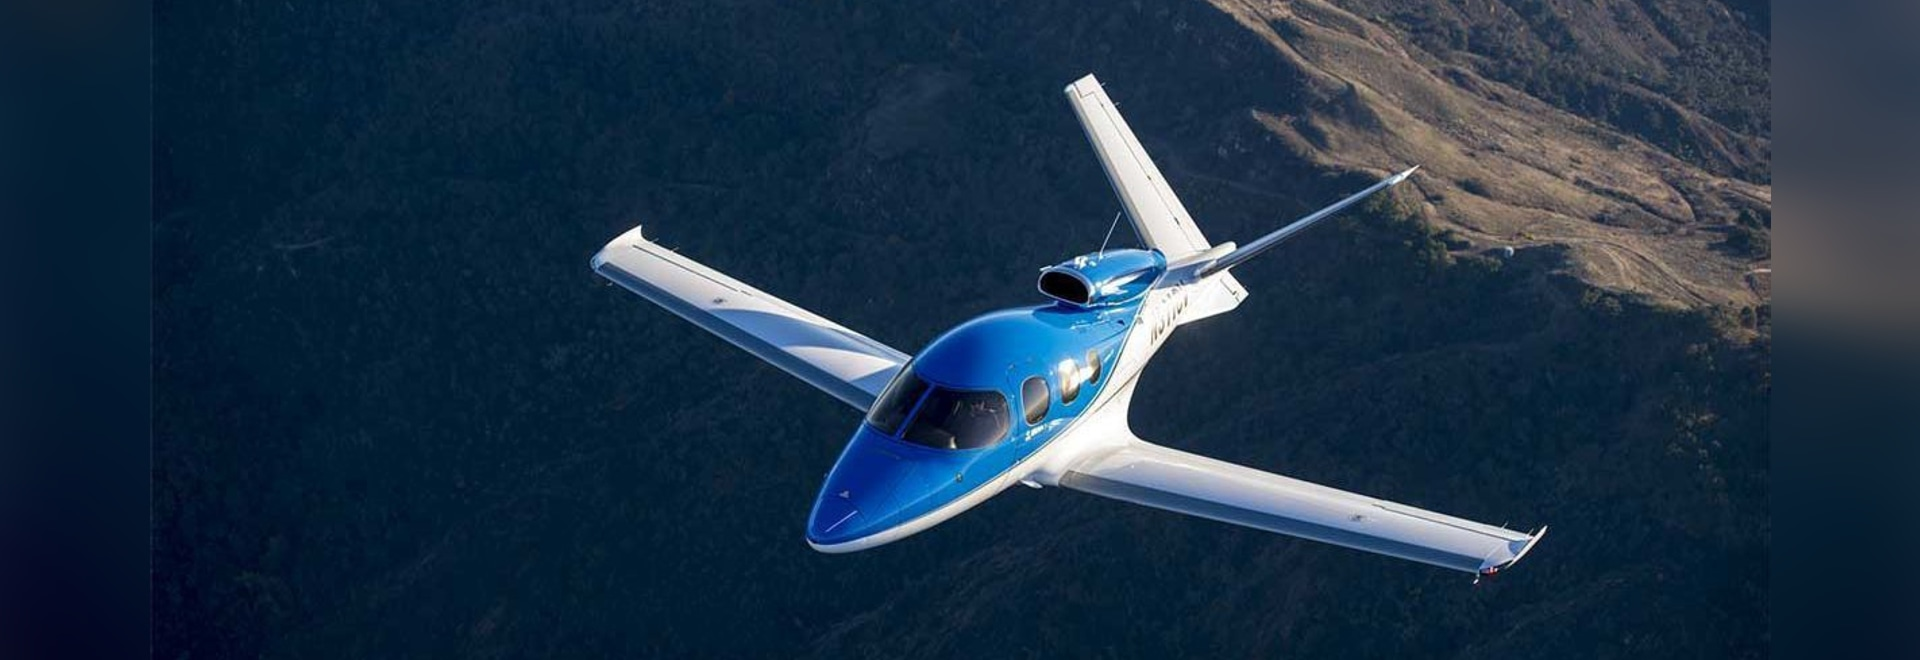 The second-generation Cirrus Vision Jet features a number of improvements customers will immediately appreciate.